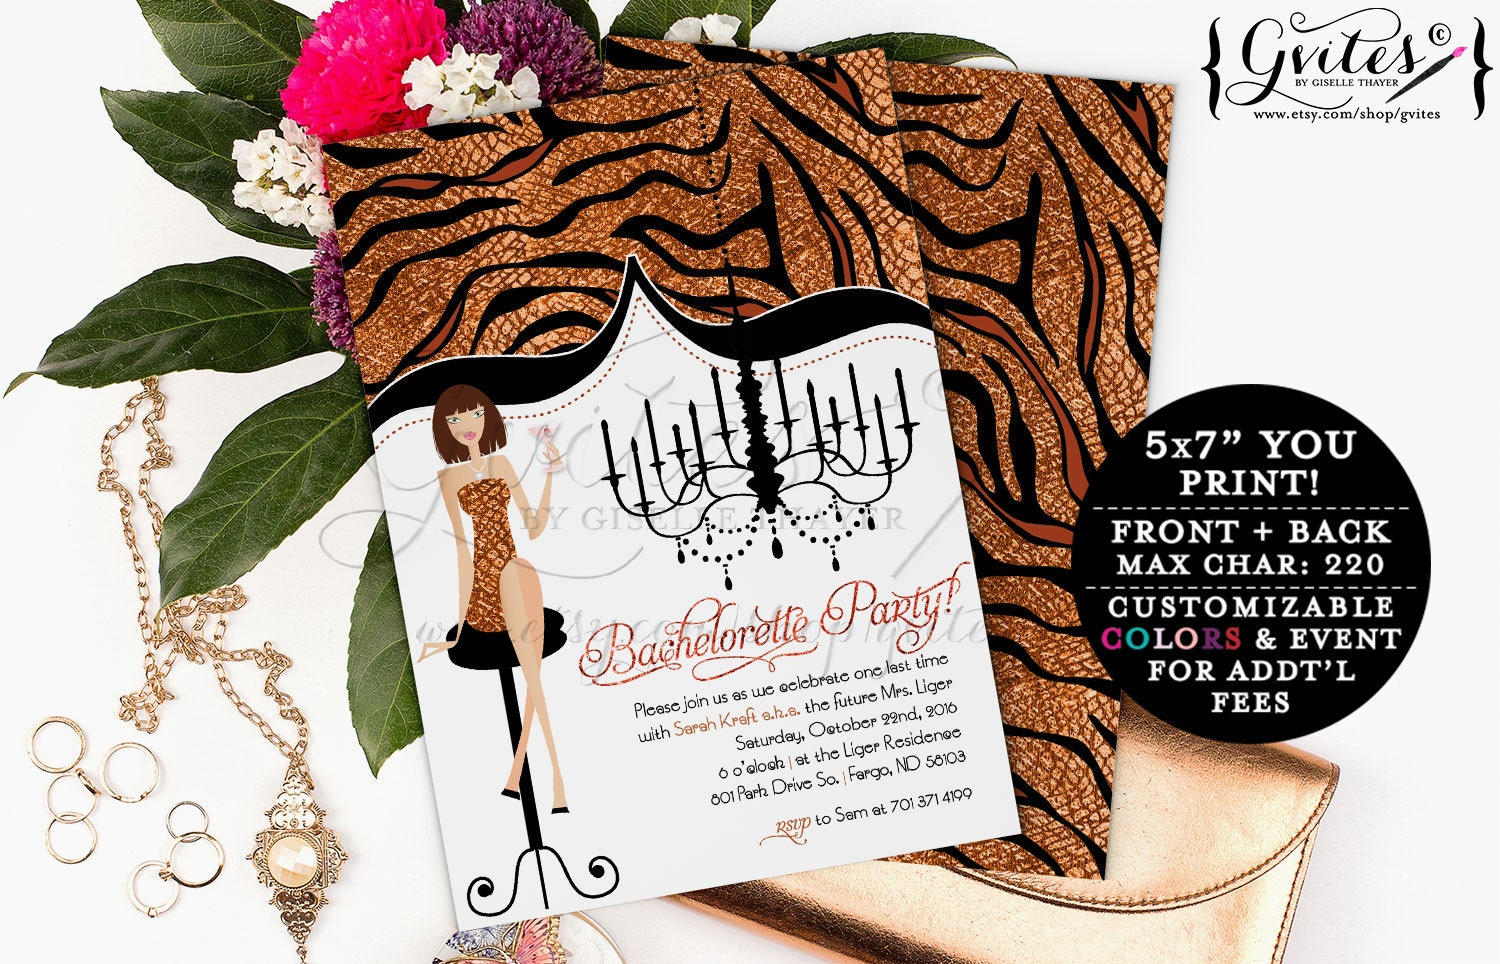 Bachelorette Party Glitz & Glam